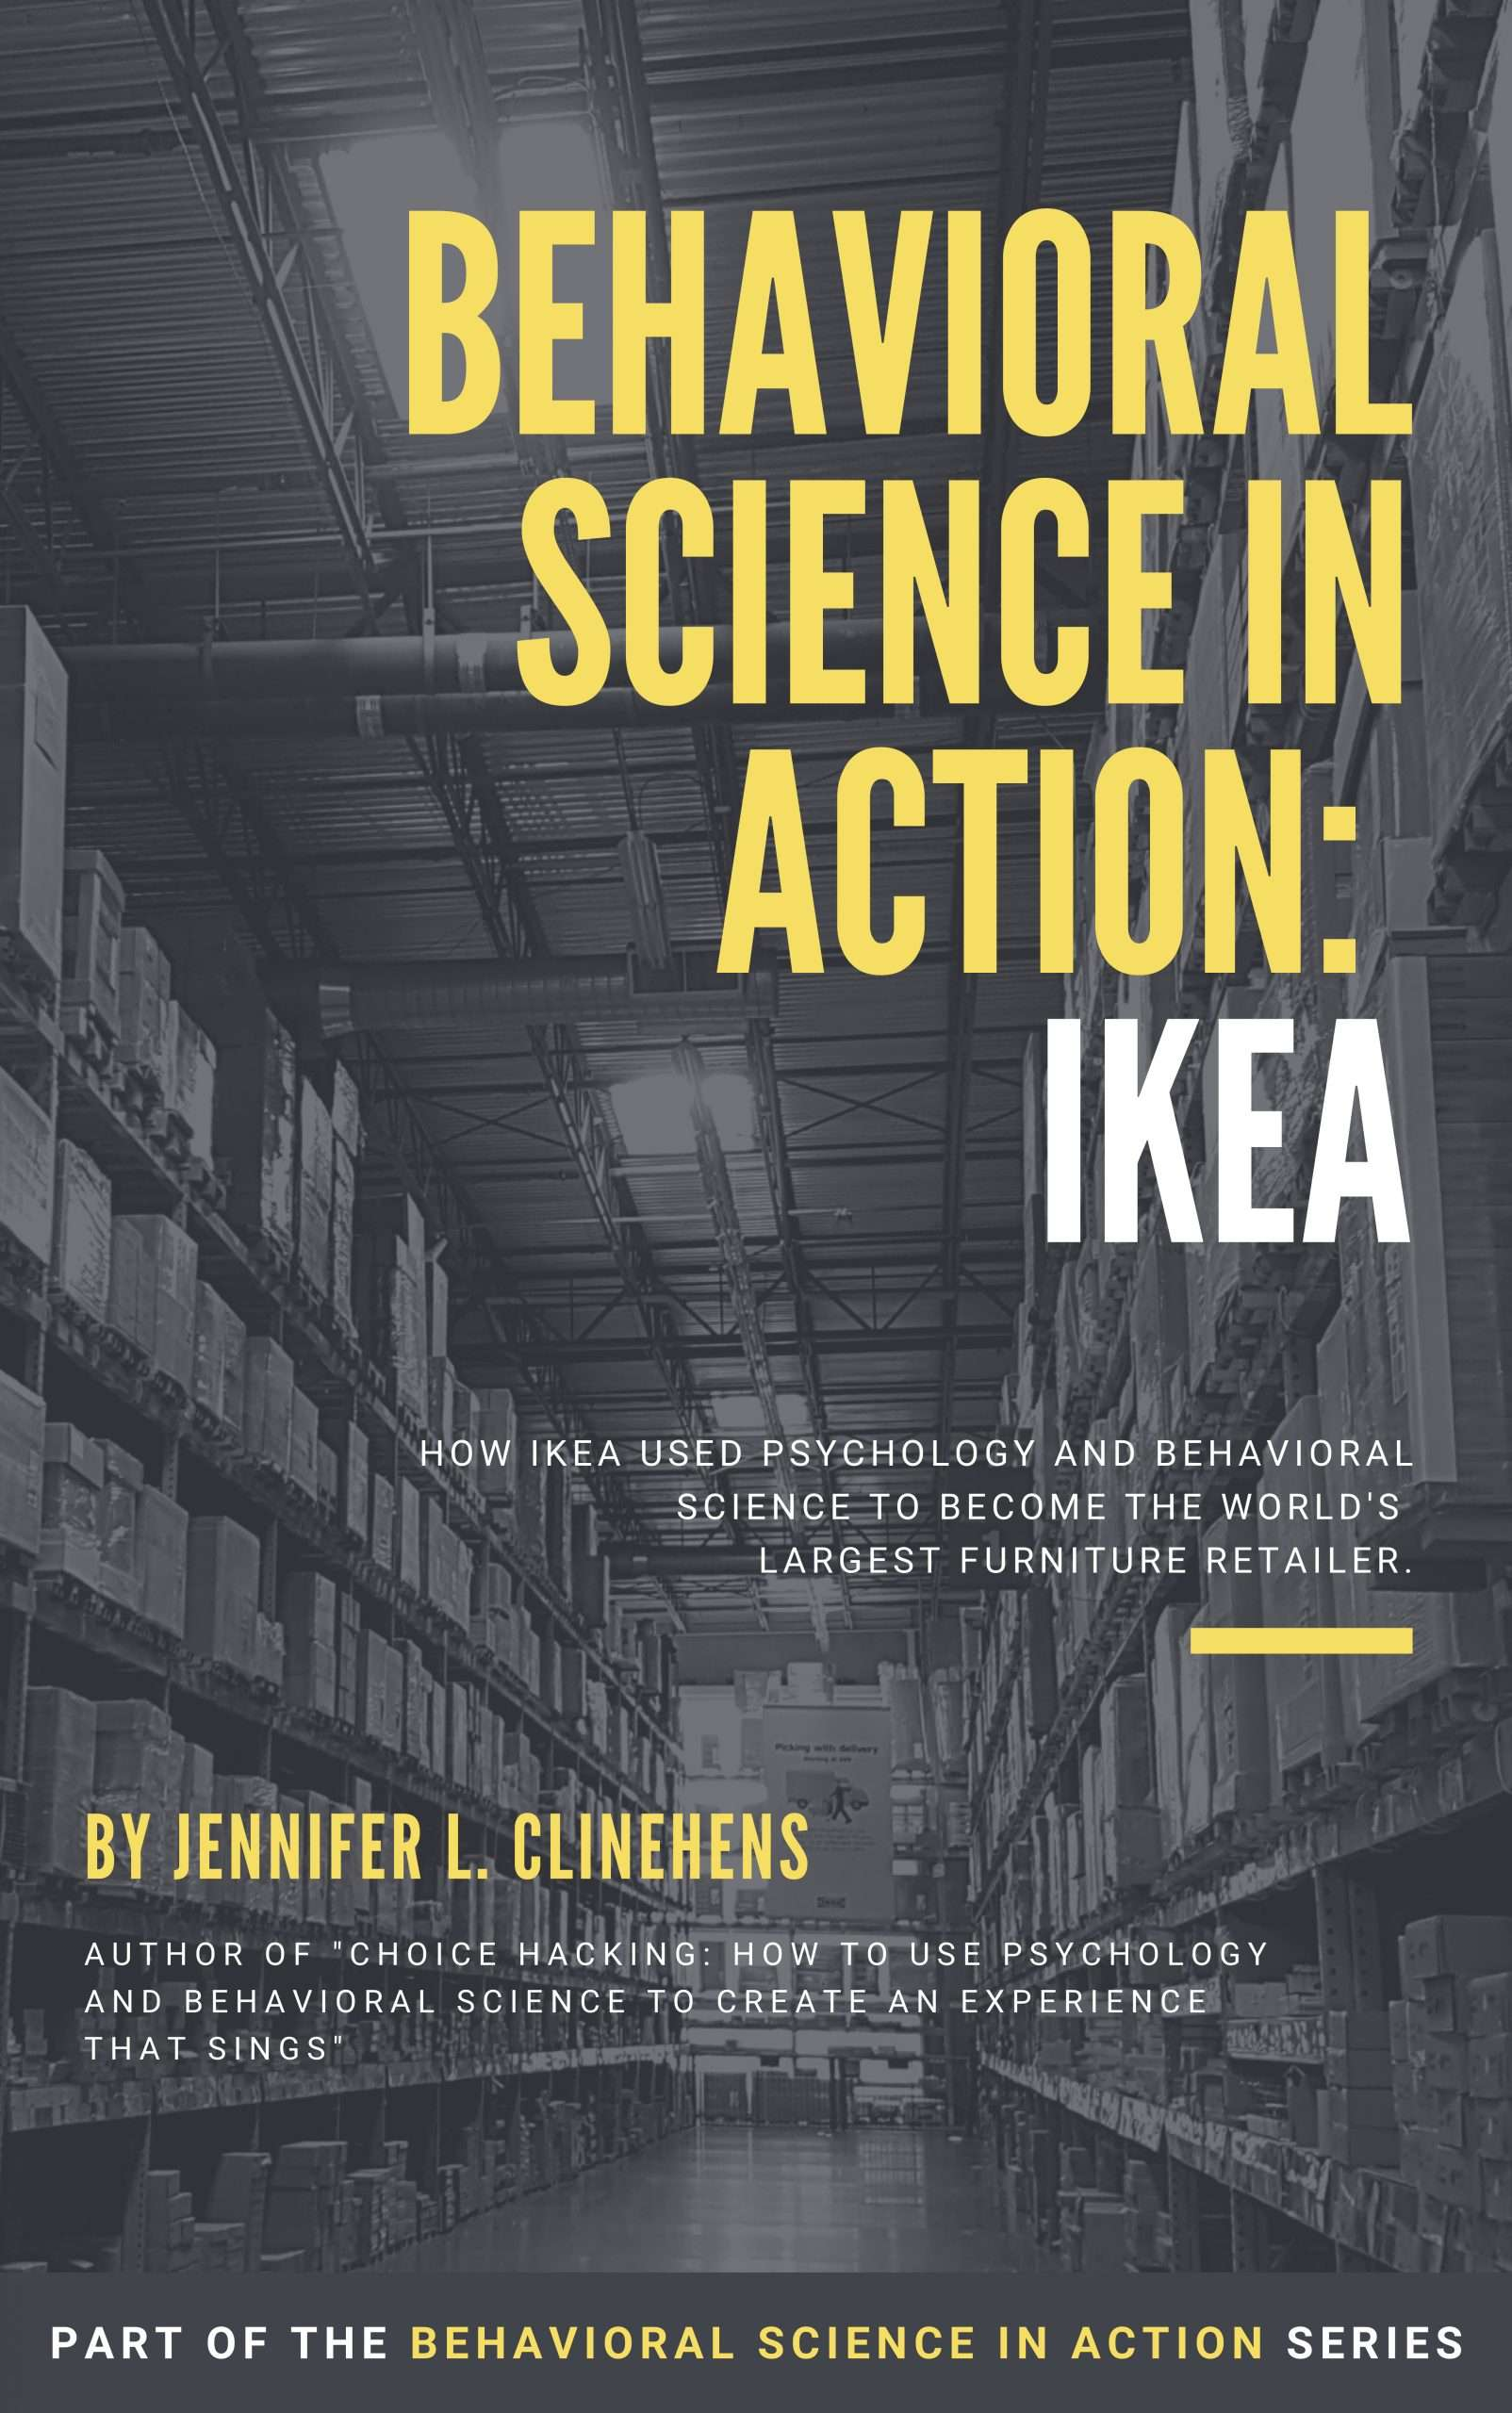 IKEA Cover Behavioral Science in Action